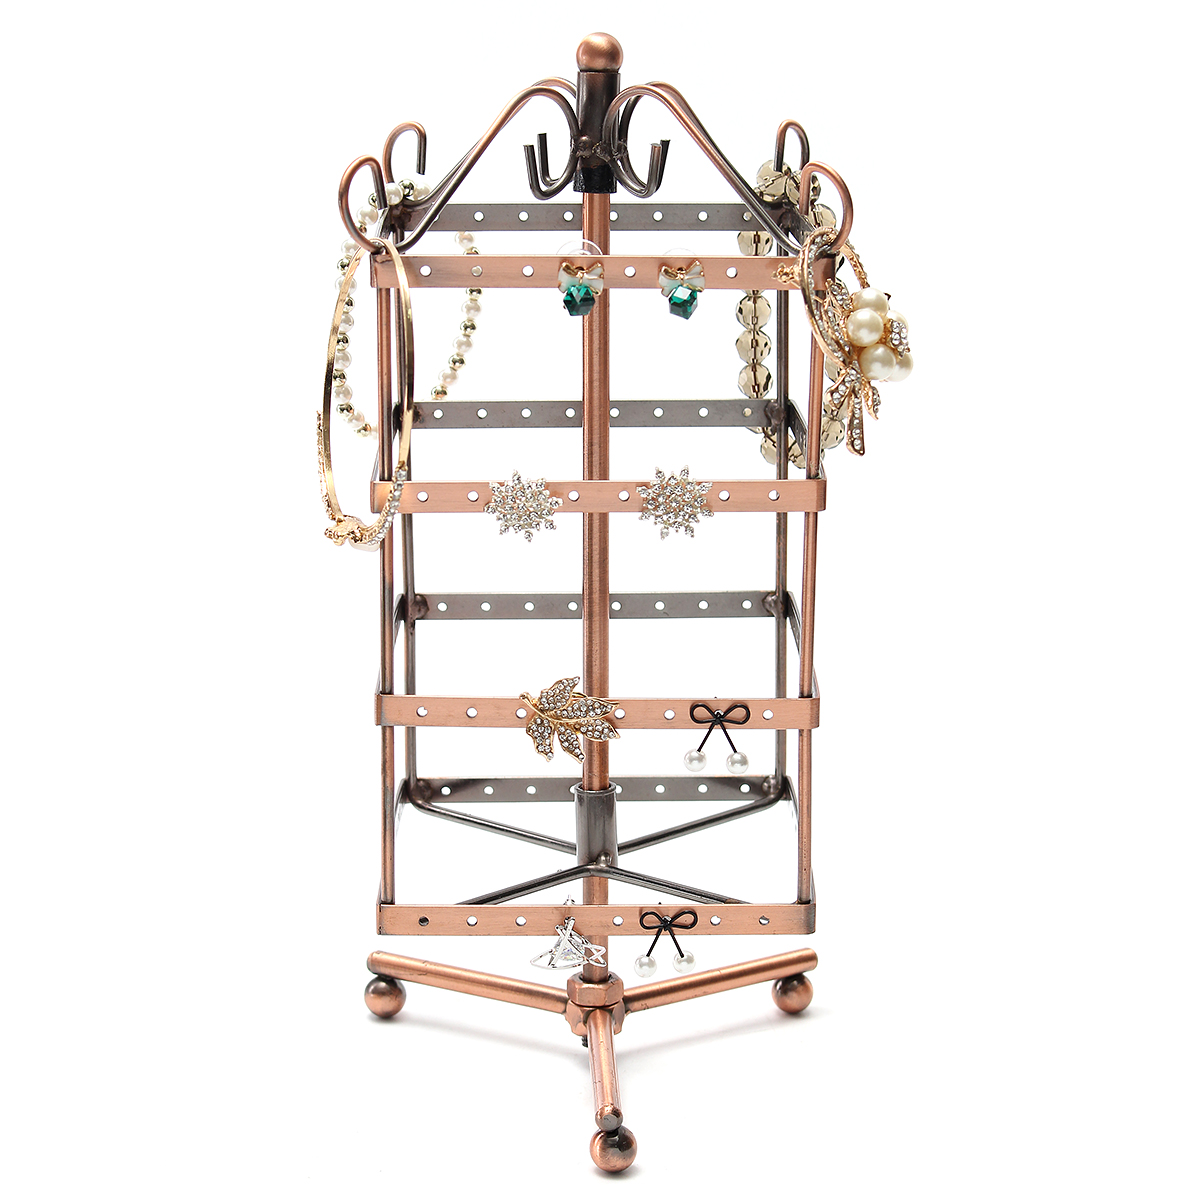 Retro Multifunctional Metal Rotating Jewellery Display Stand Earring Necklace Hook Holder Hanger Display Stand Holder